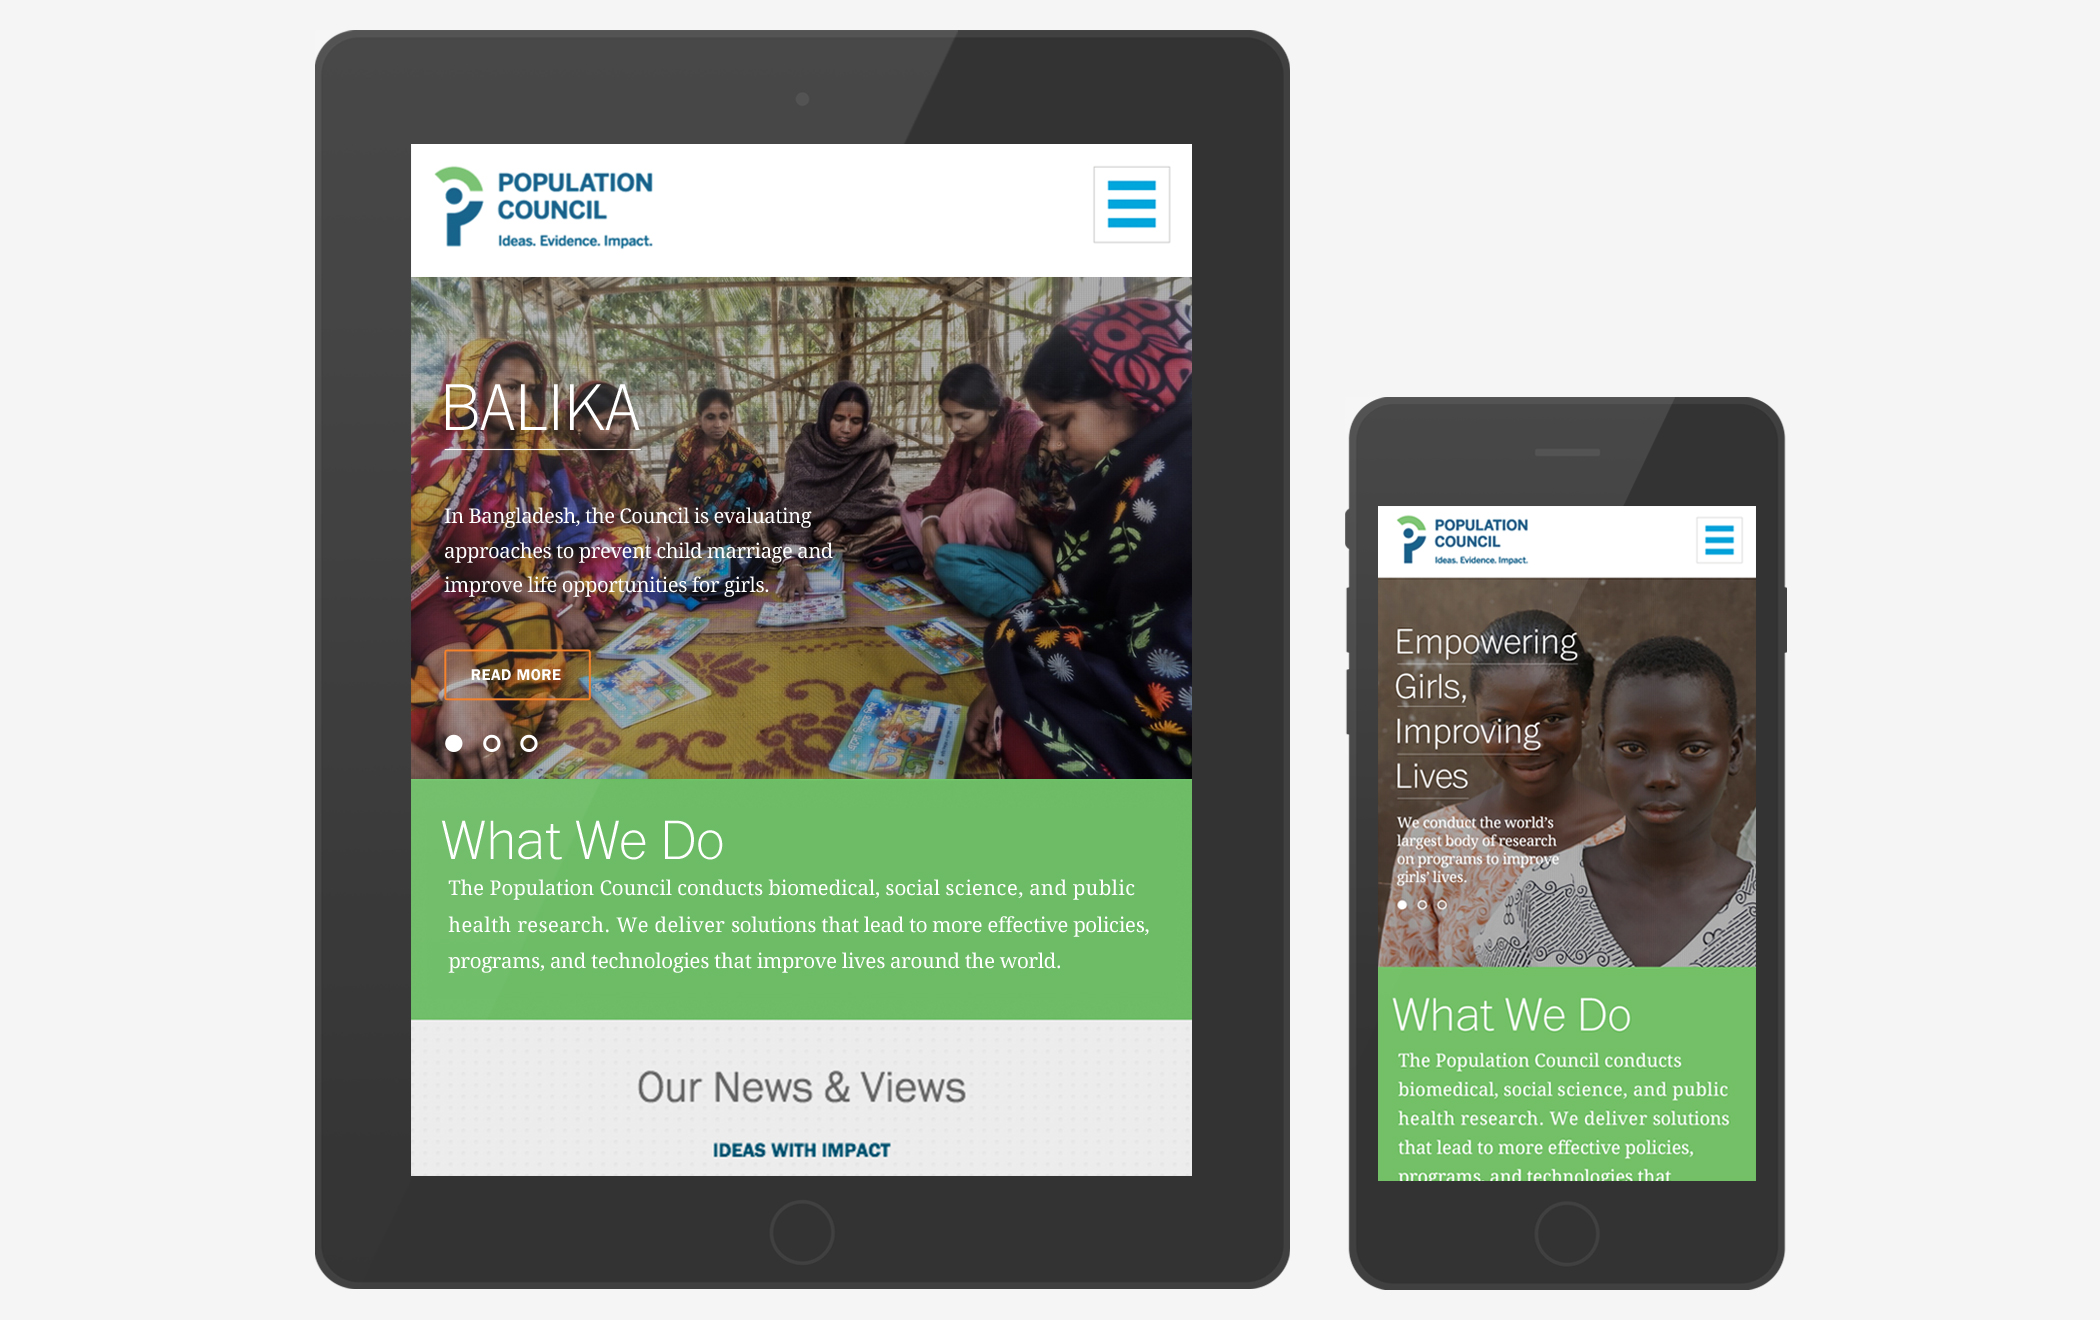 Pages from the Population Council website displayed on a digital tablet and smartphone.